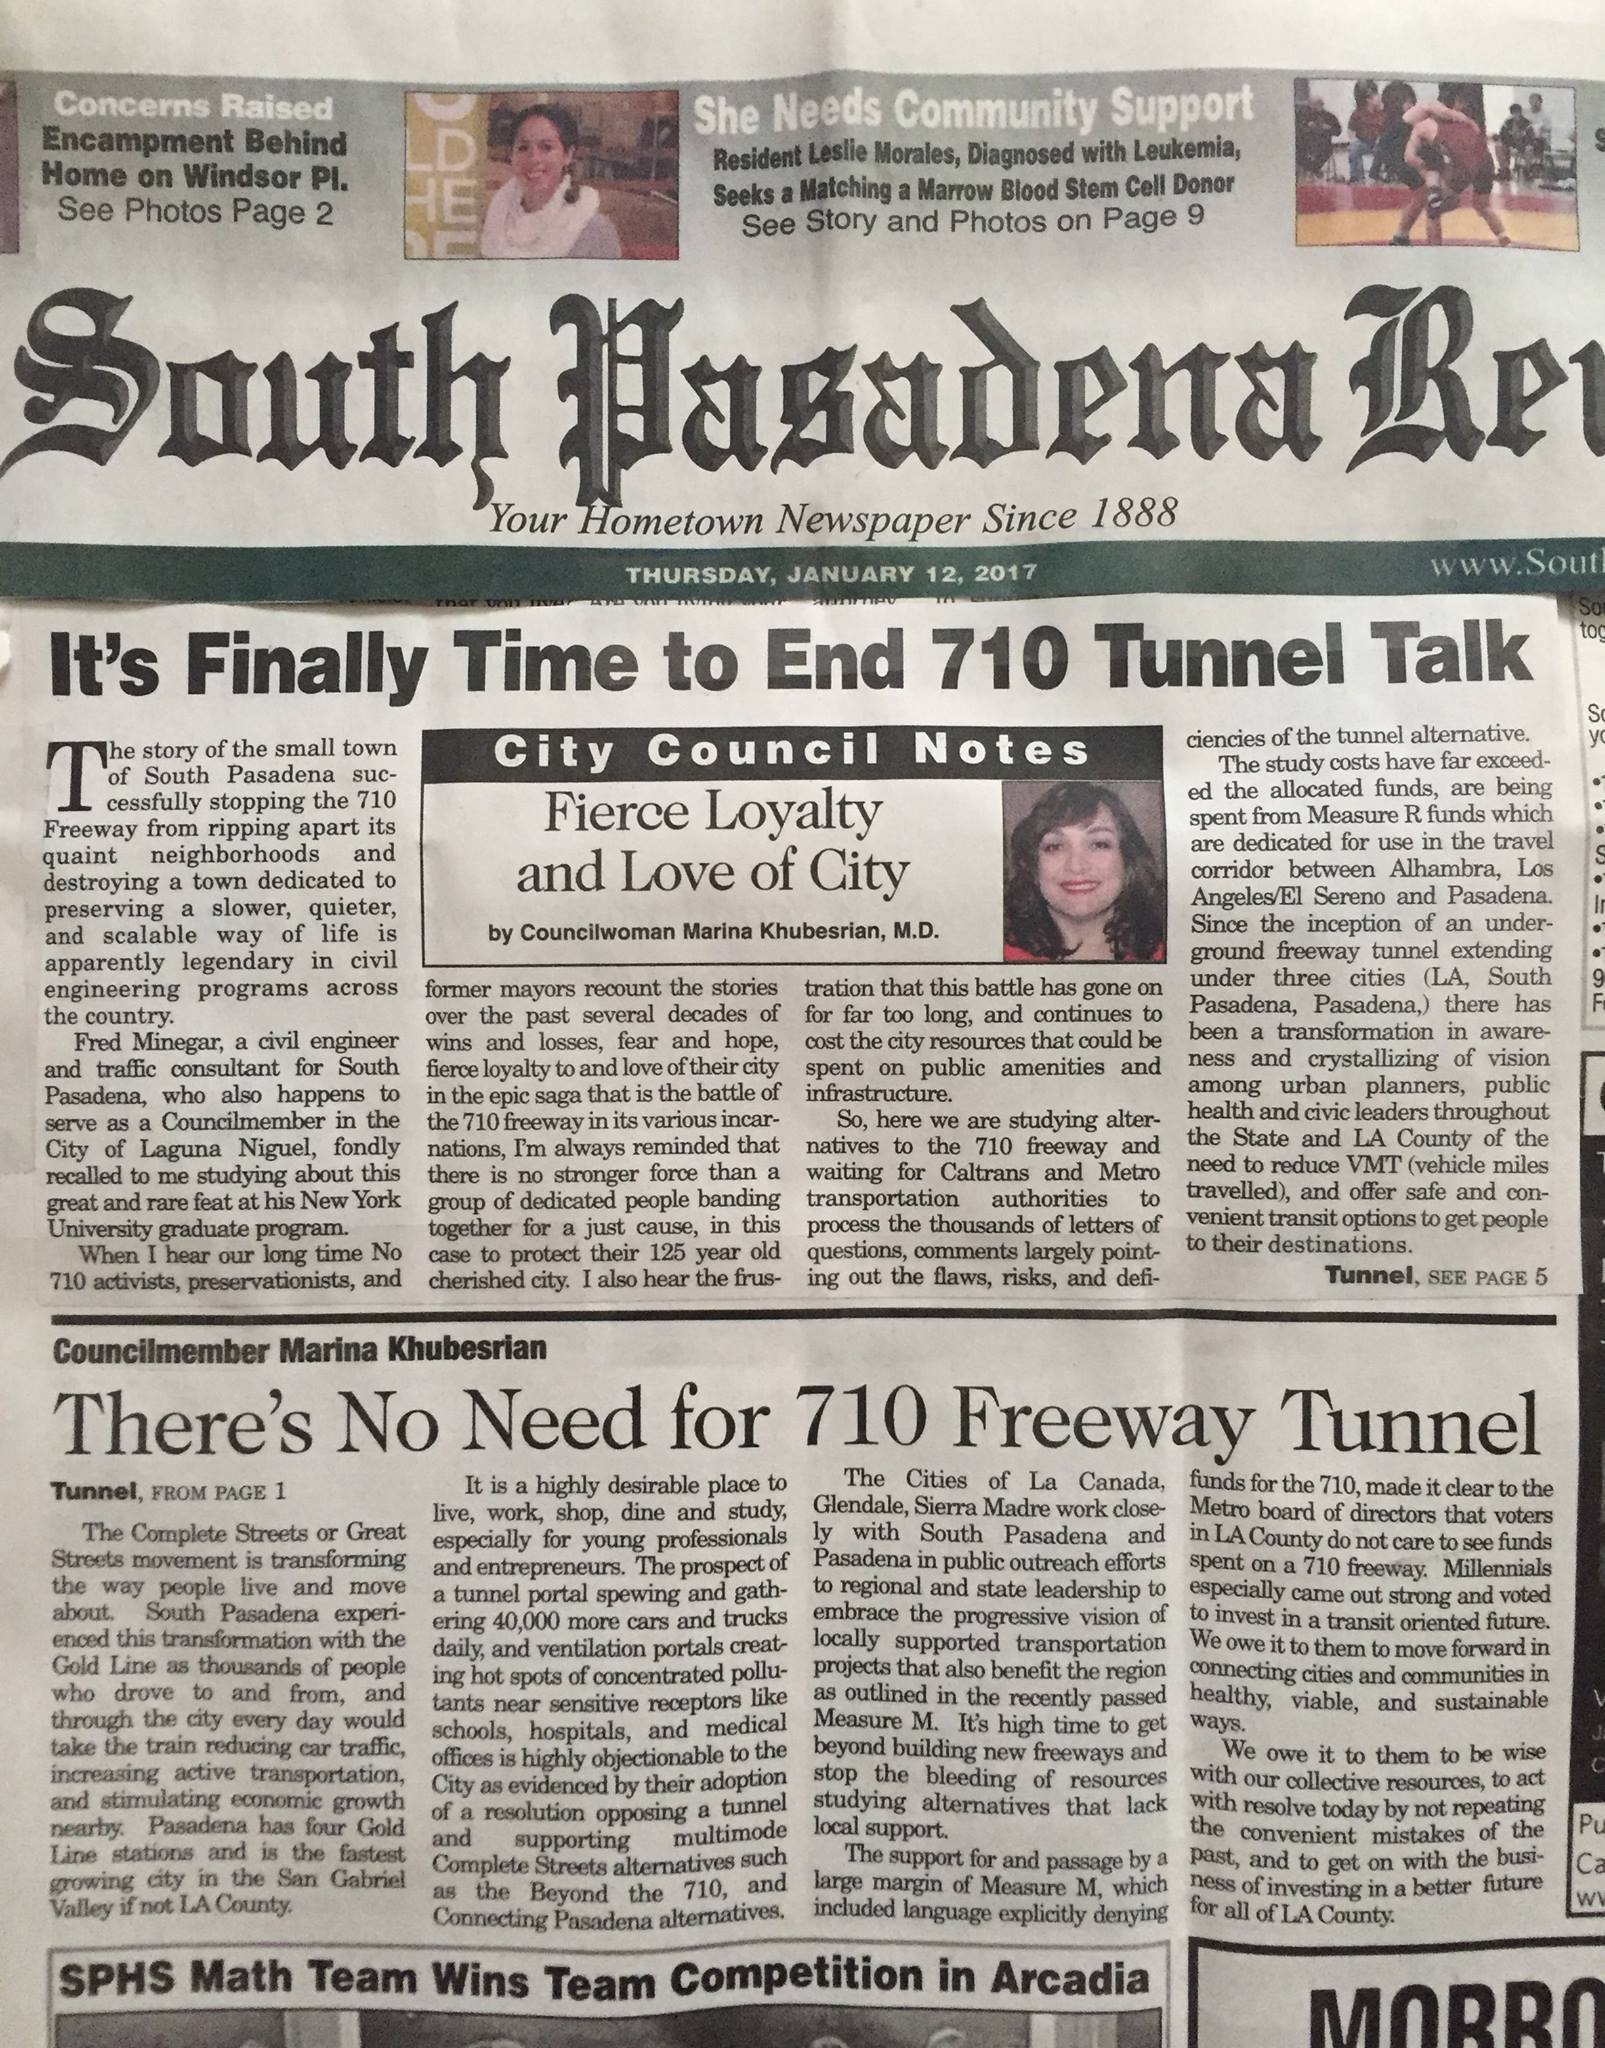 Its_finally_time_to_end_the_710_Tunnel_talk.jpg